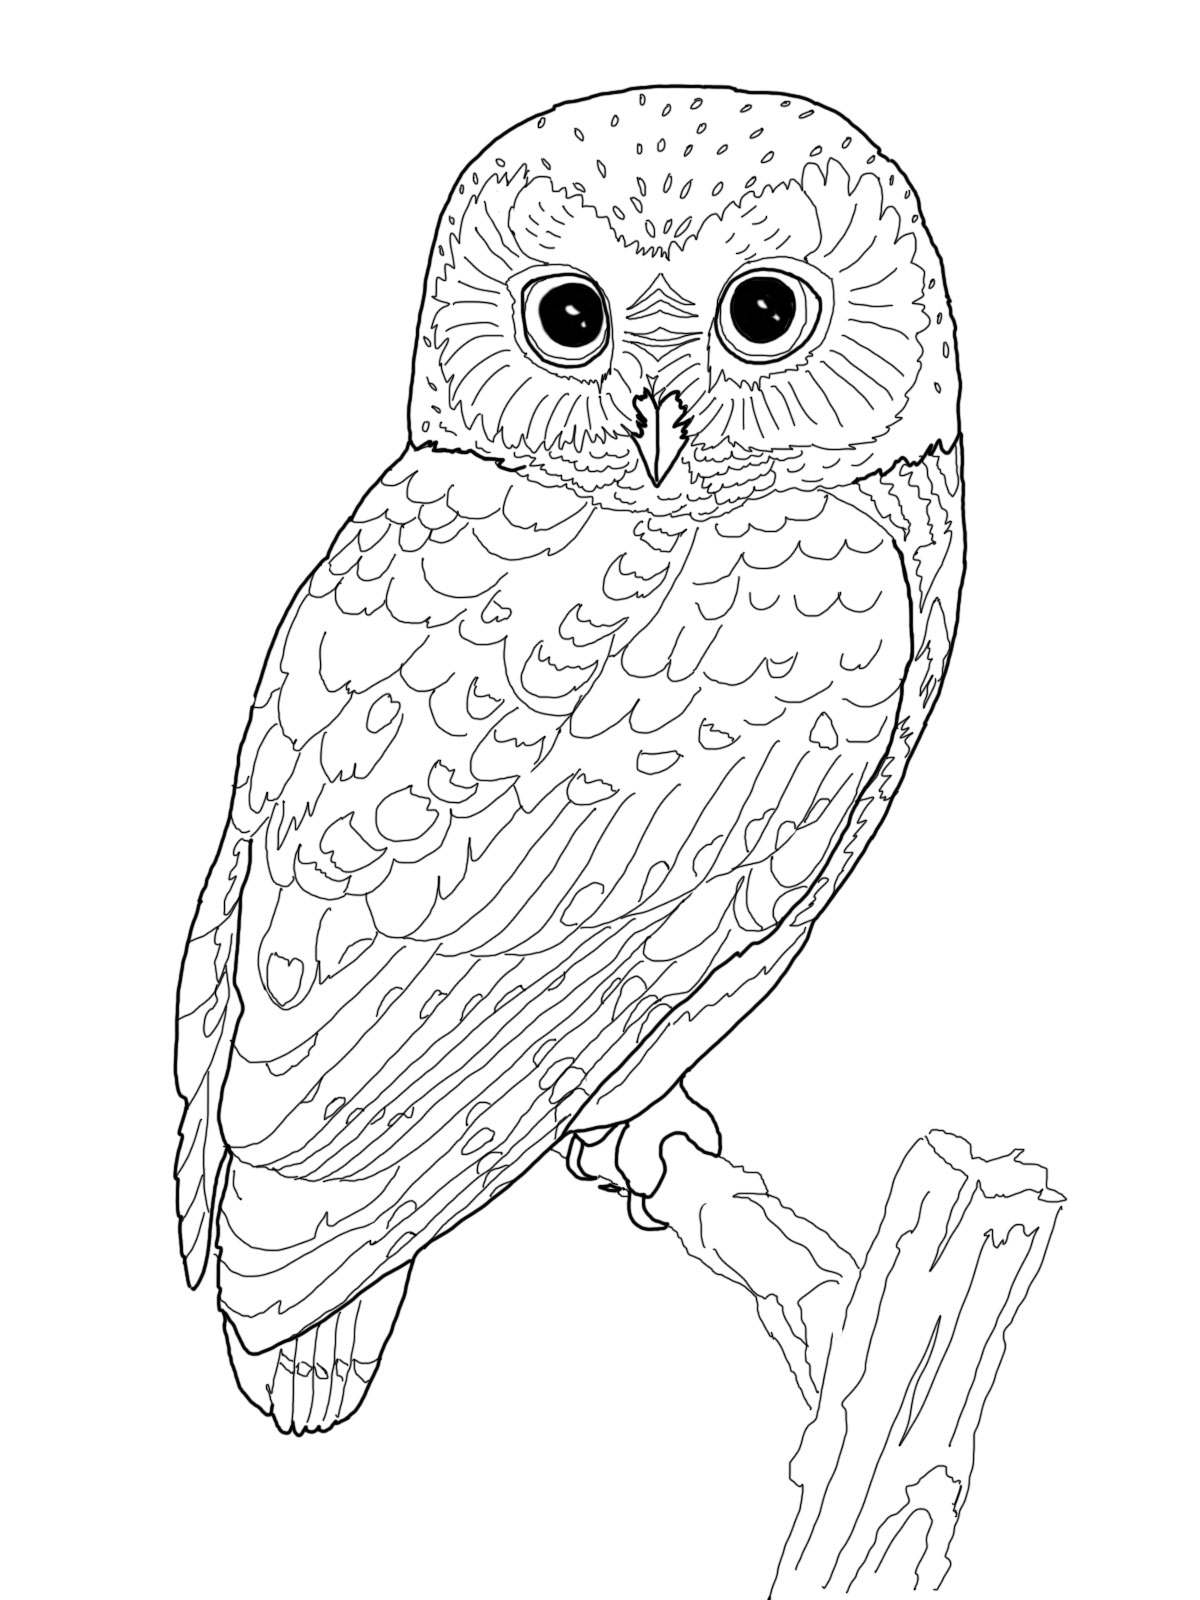 owl picture to color owl coloring pages for adults free detailed owl coloring to color owl picture